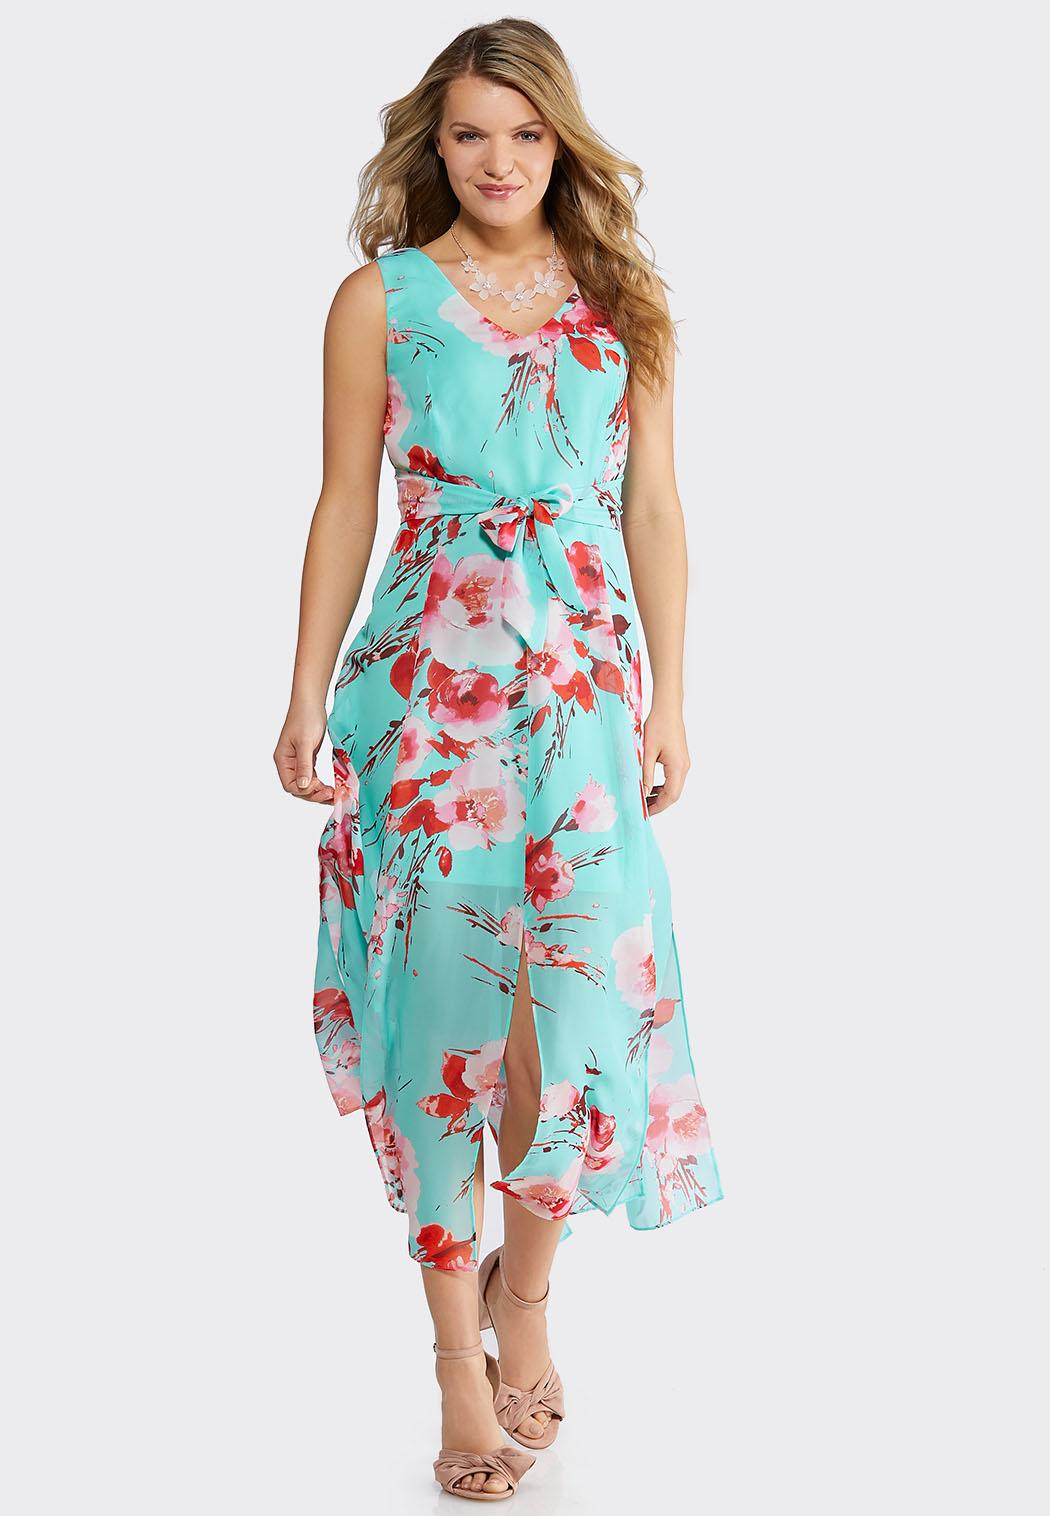 708887dc739 Women s Dresses- Fit and Flare